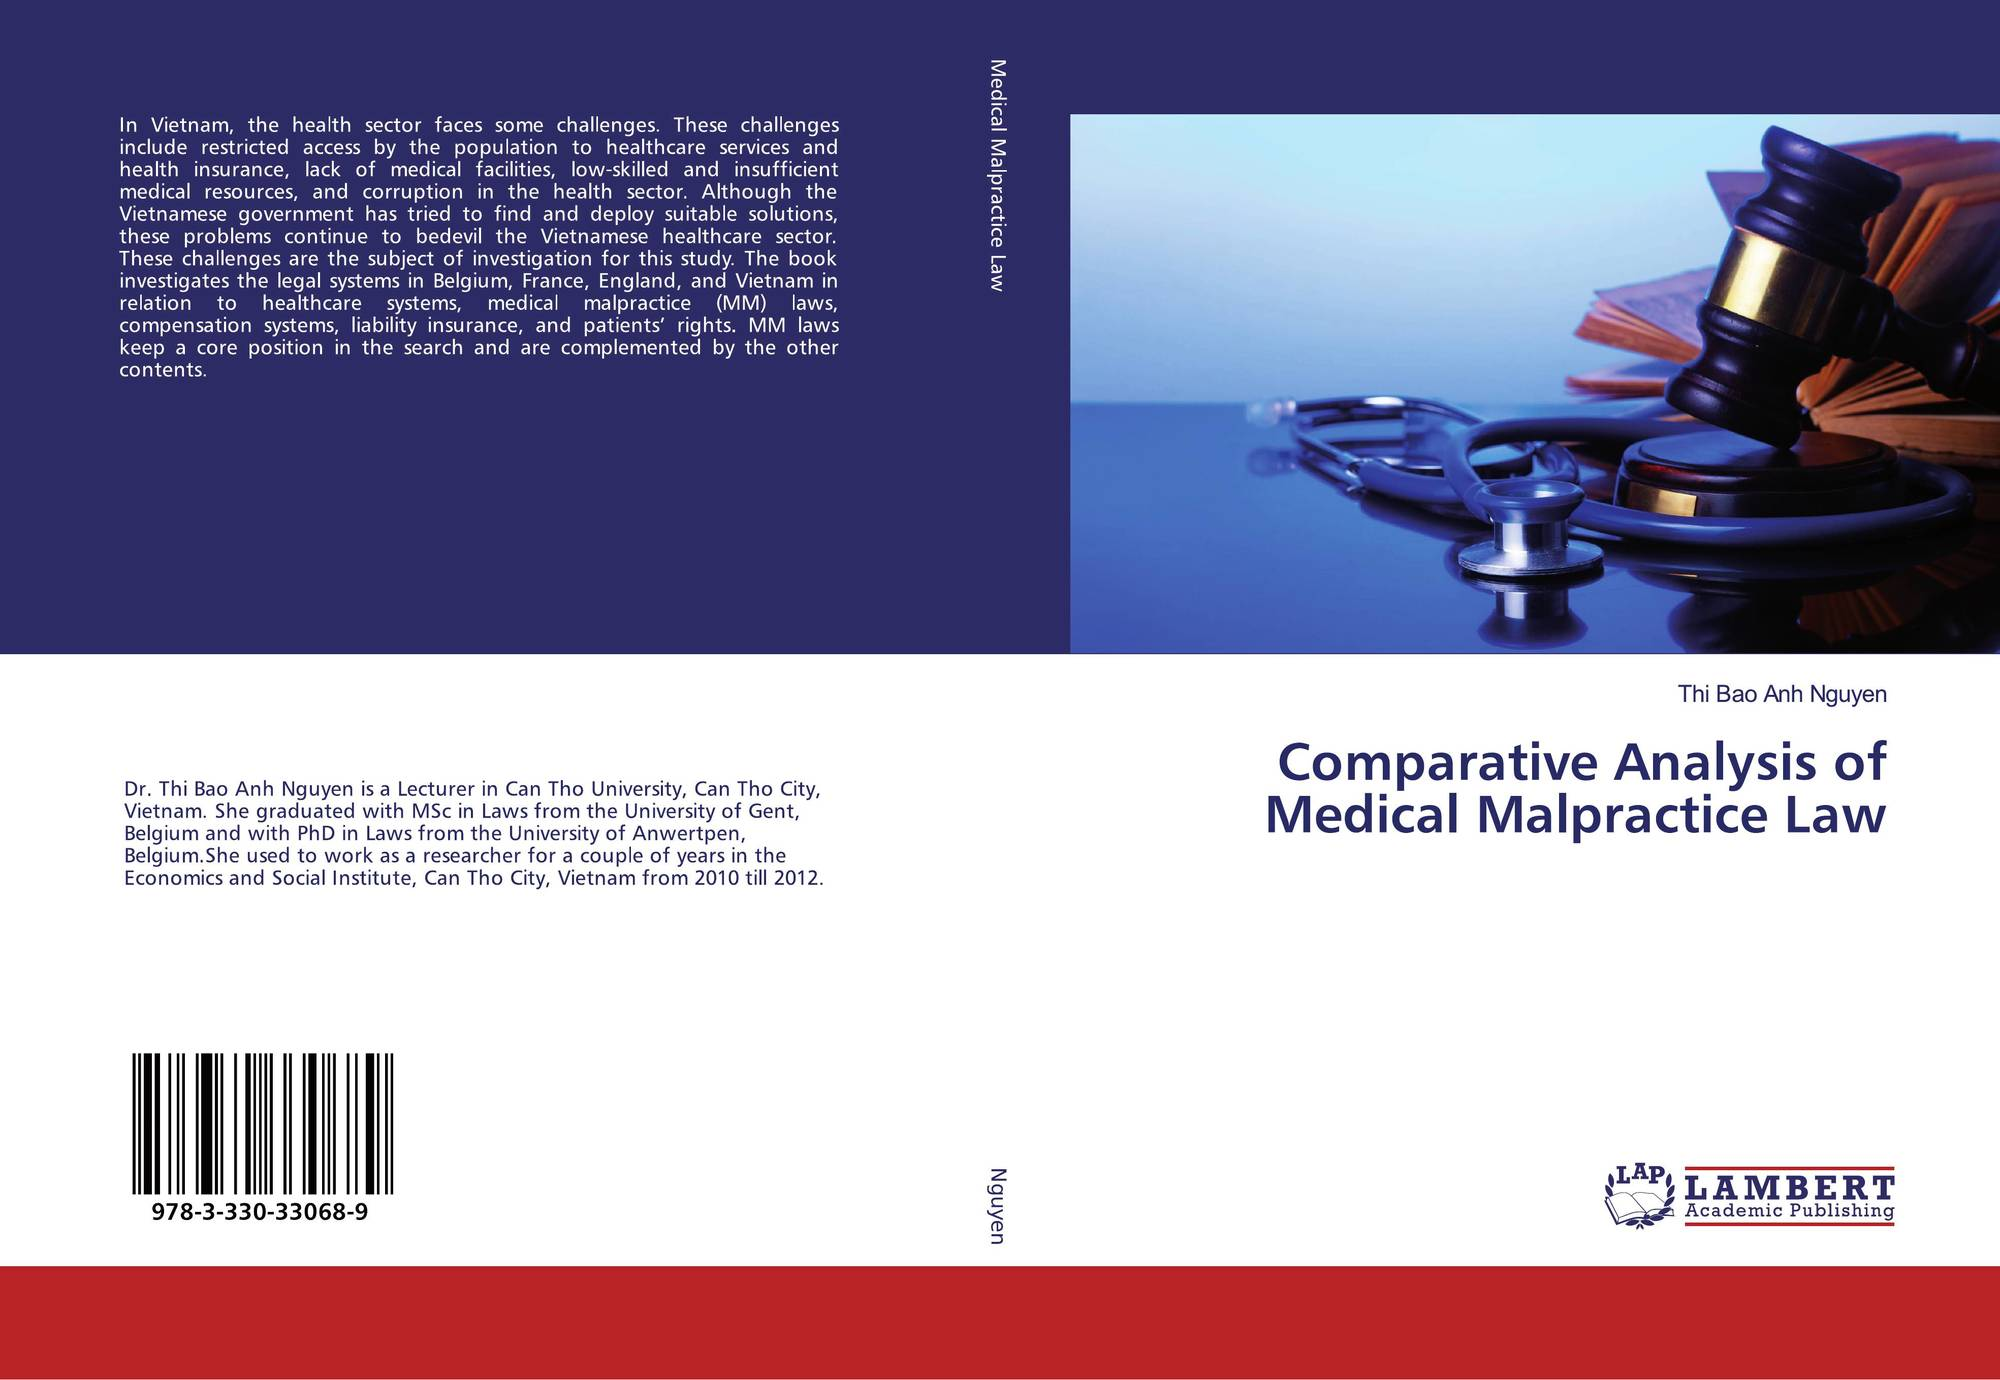 Comparative Analysis of Medical Malpractice Law, 978-3-330